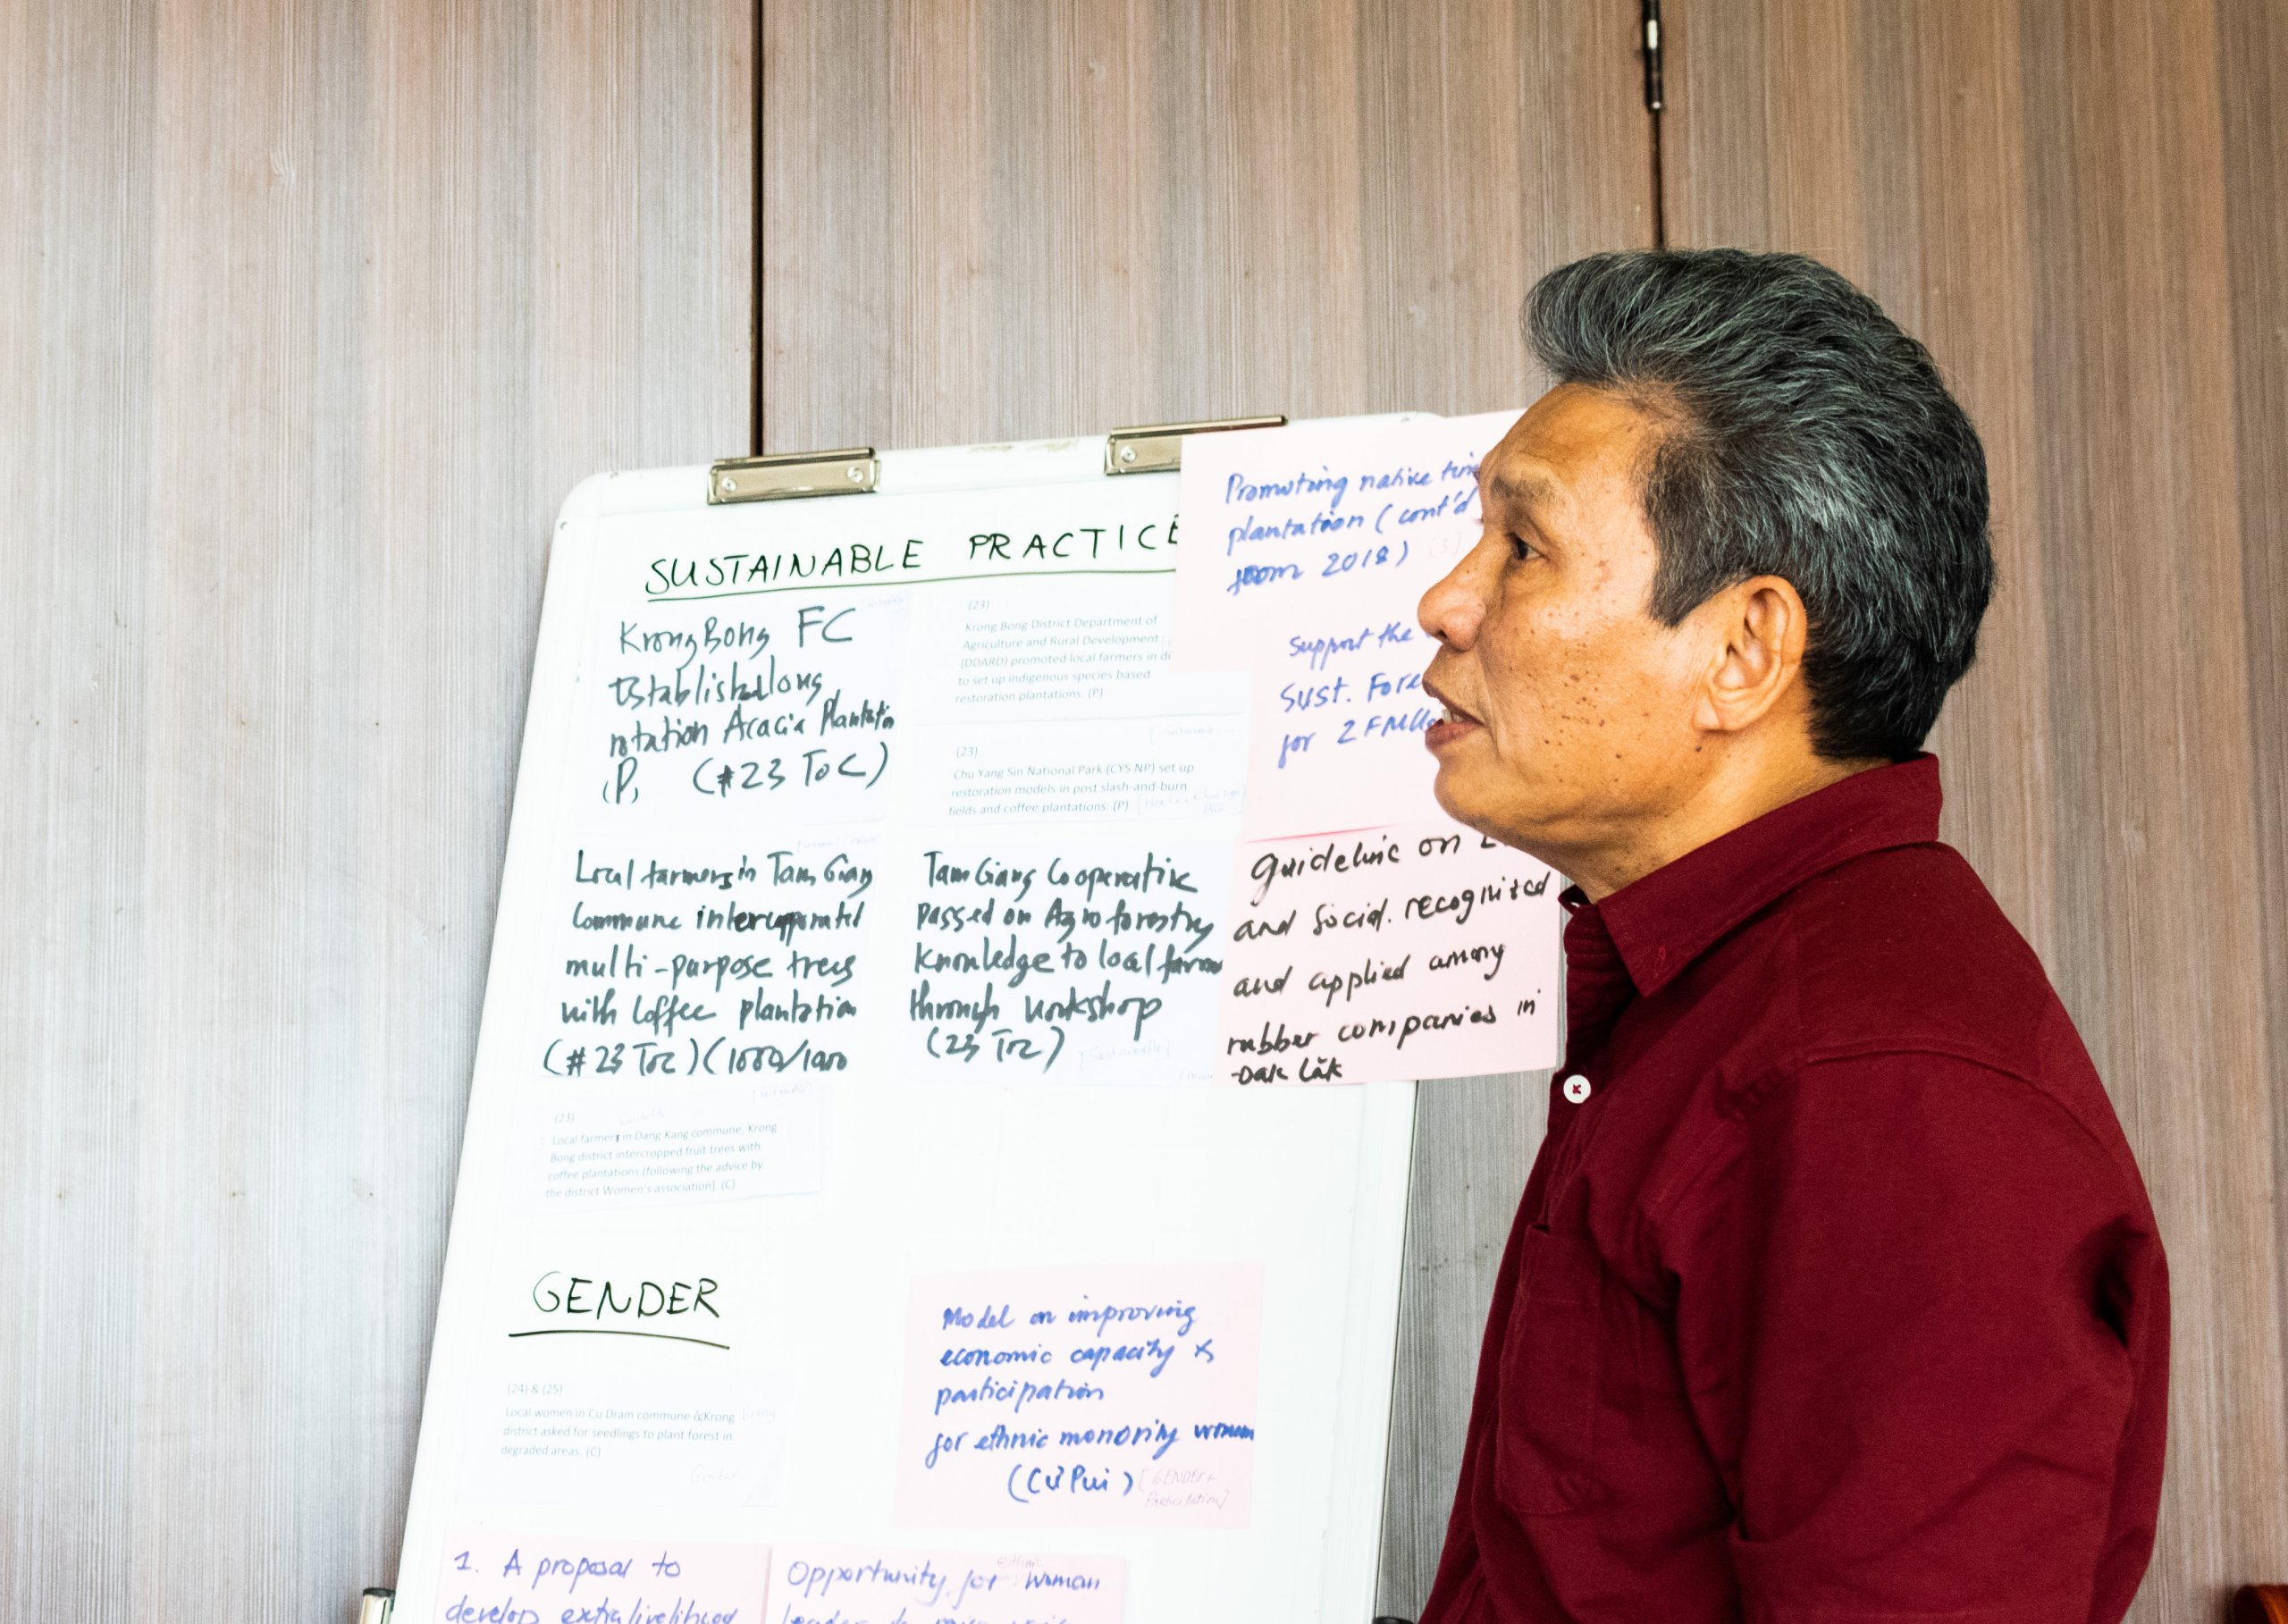 Green Livelihoods Alliance project annual reflection and planning meeting